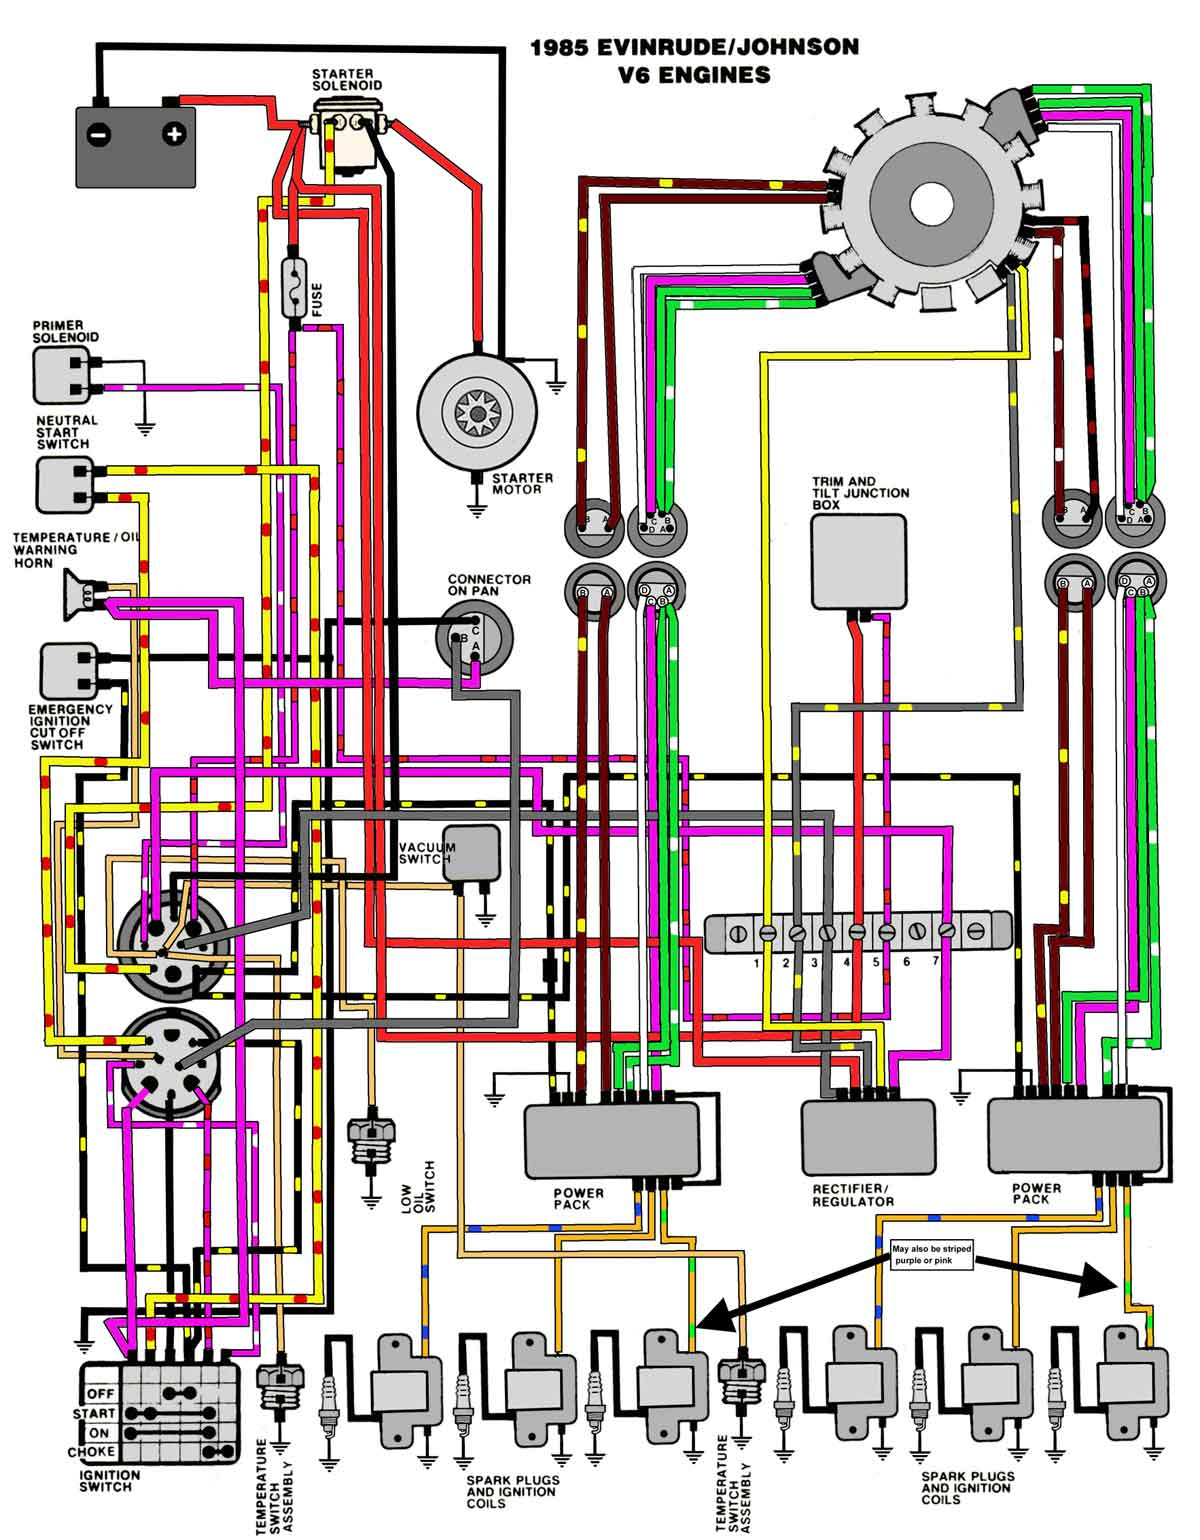 evinrude etec 150 wire diagram schema wiring diagramevinrude johnson outboard wiring diagrams mastertech marine evinrude 6hp engine evinrude etec 150 wire diagram